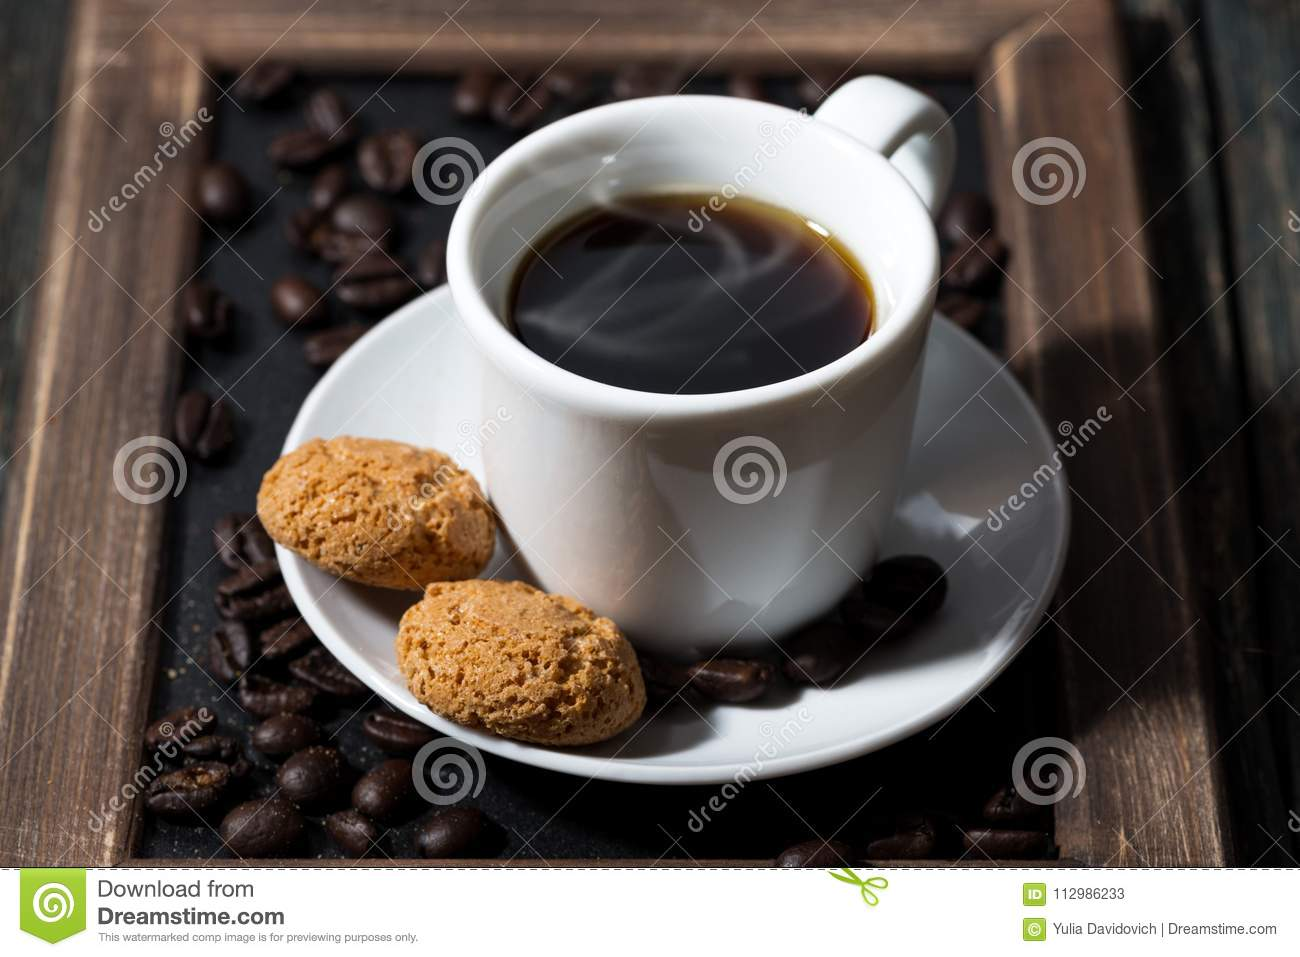 Cup of black coffee and cookies on a tray, closeup